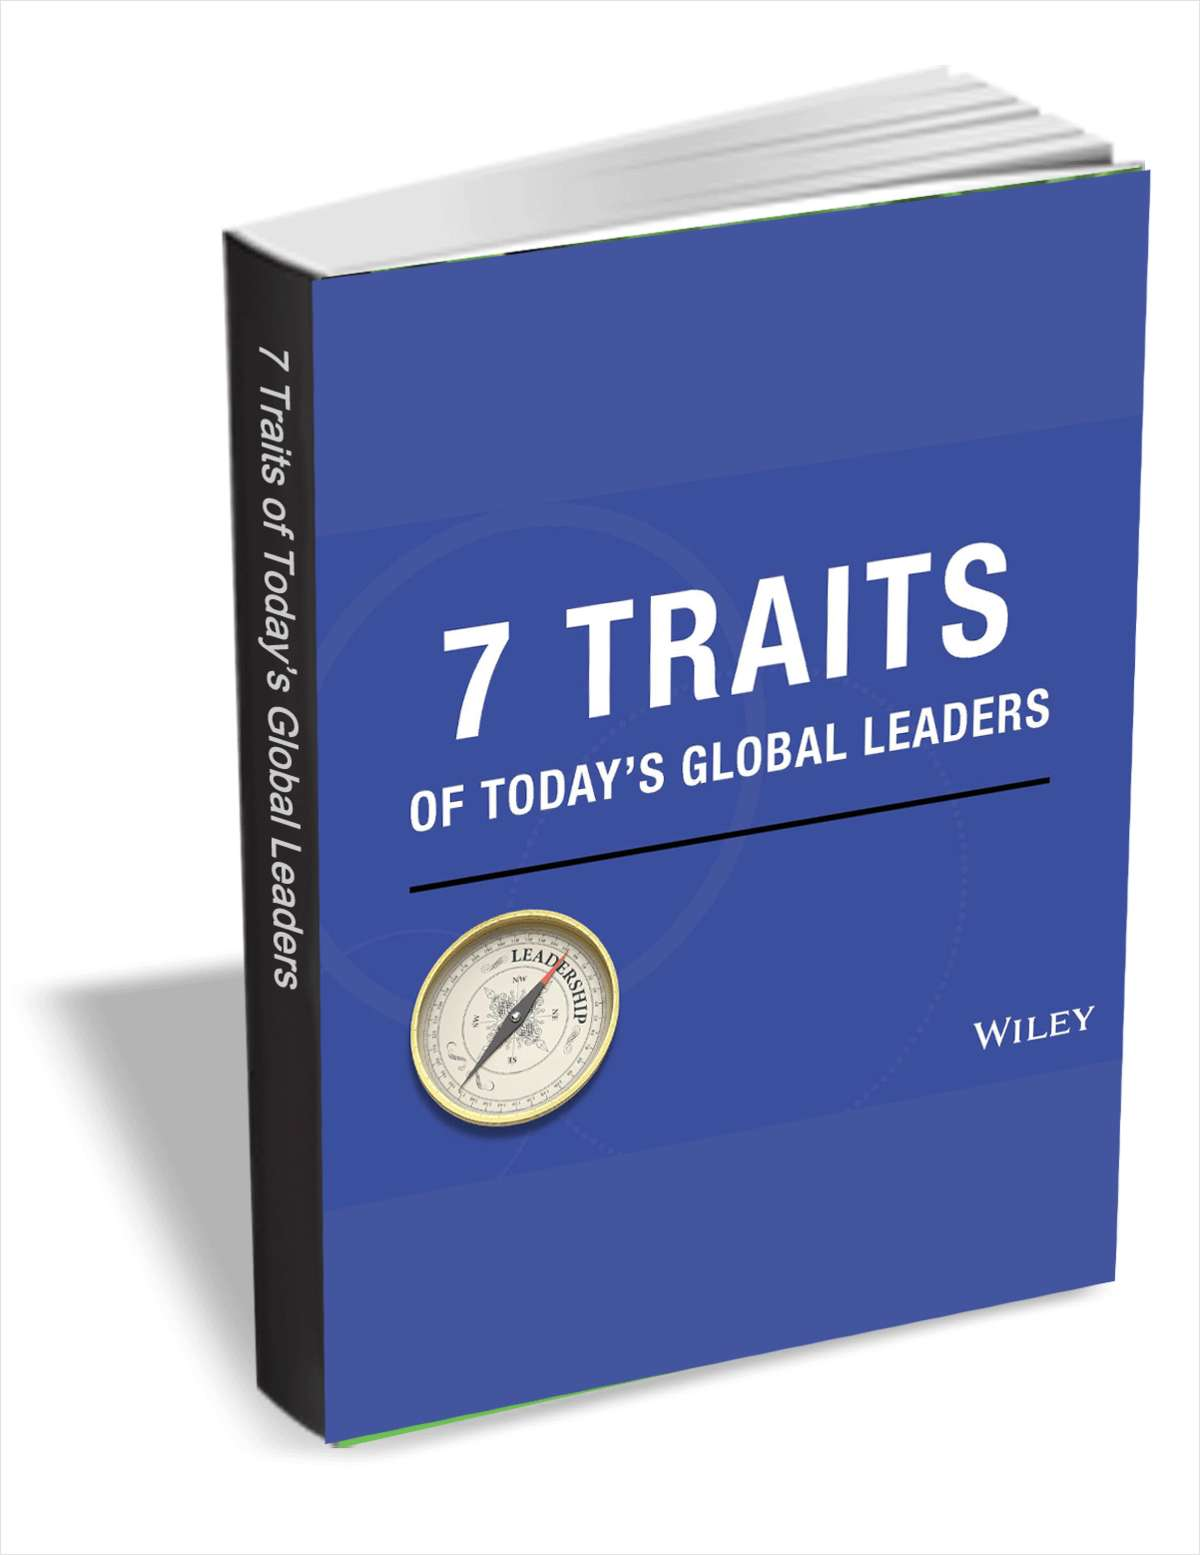 7 Traits of Today's Global Leaders